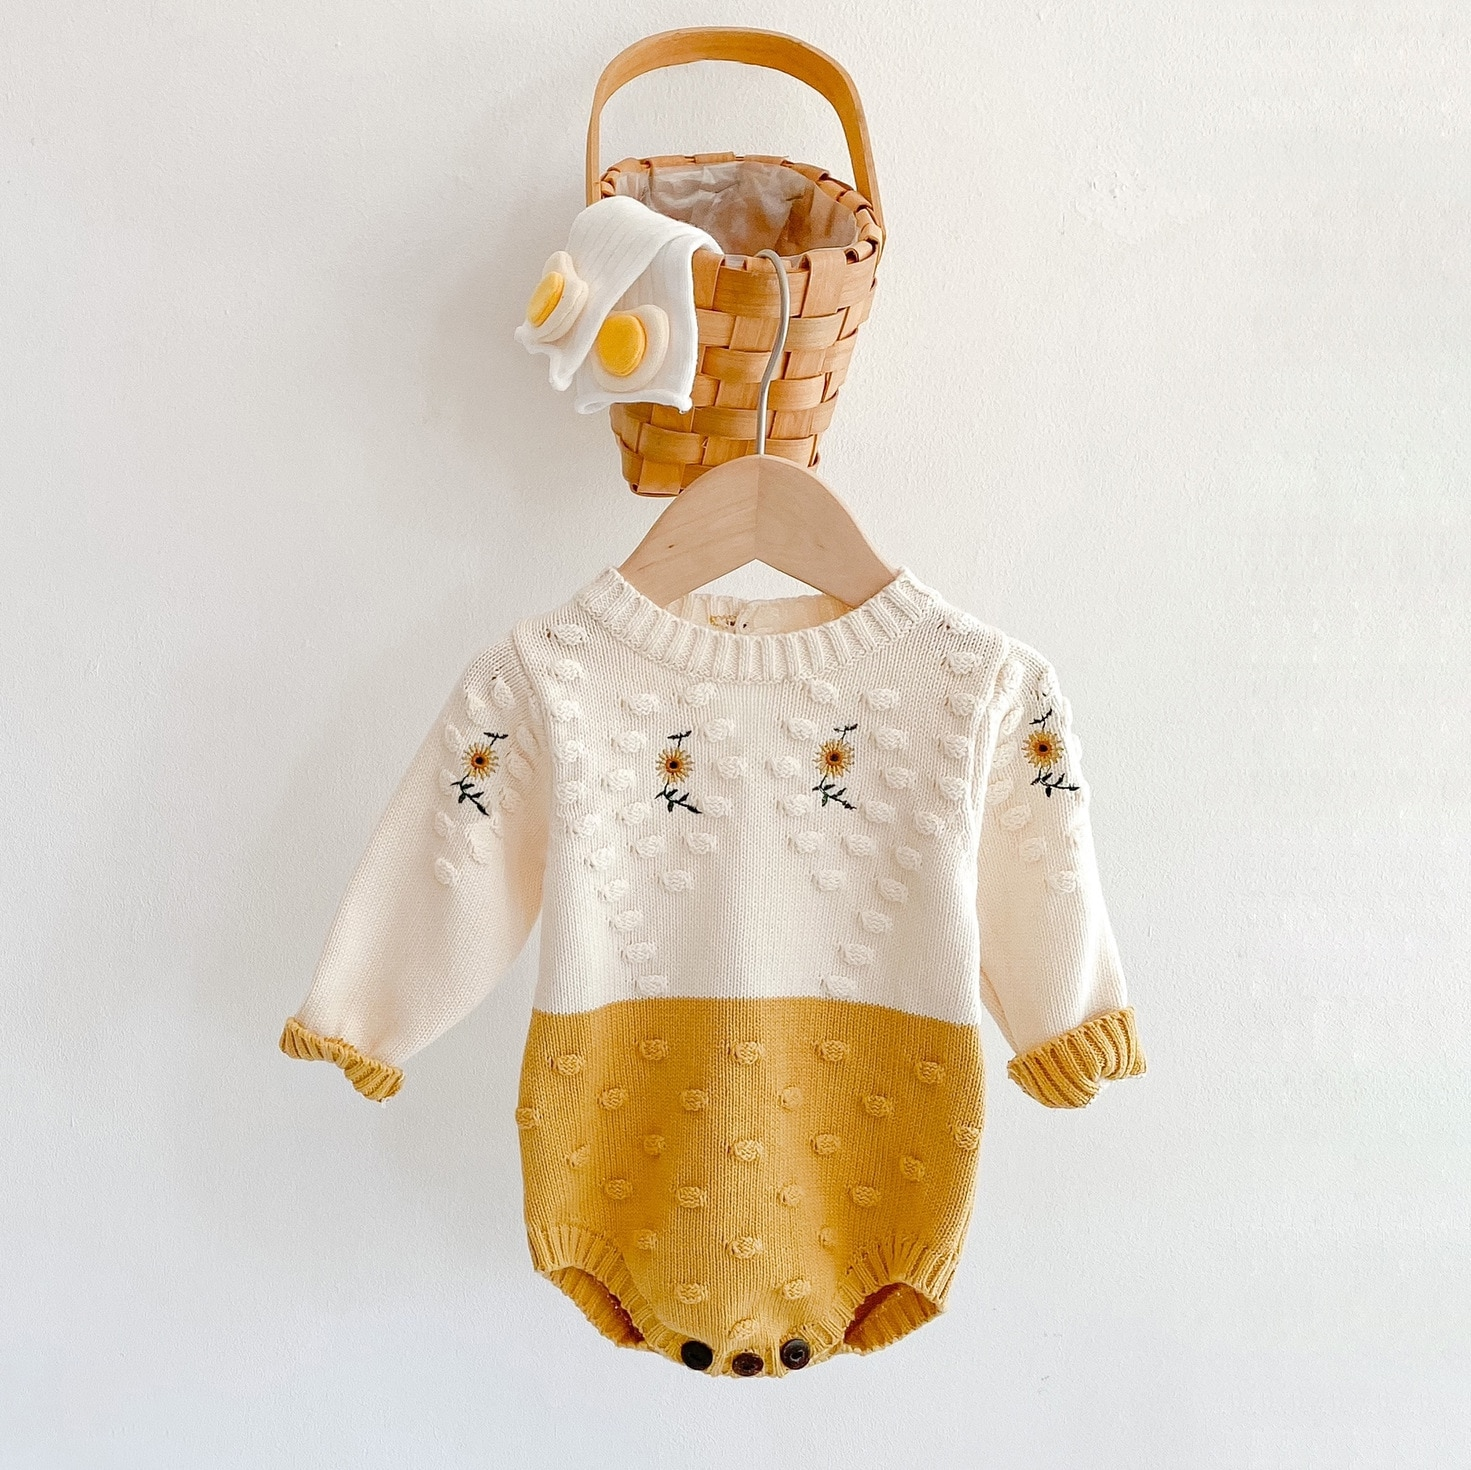 YG Clothes Spring Baby Girl Rompers Girl Long Sleeves Knit Sunflower Embroider Rompers Autumn Baby G